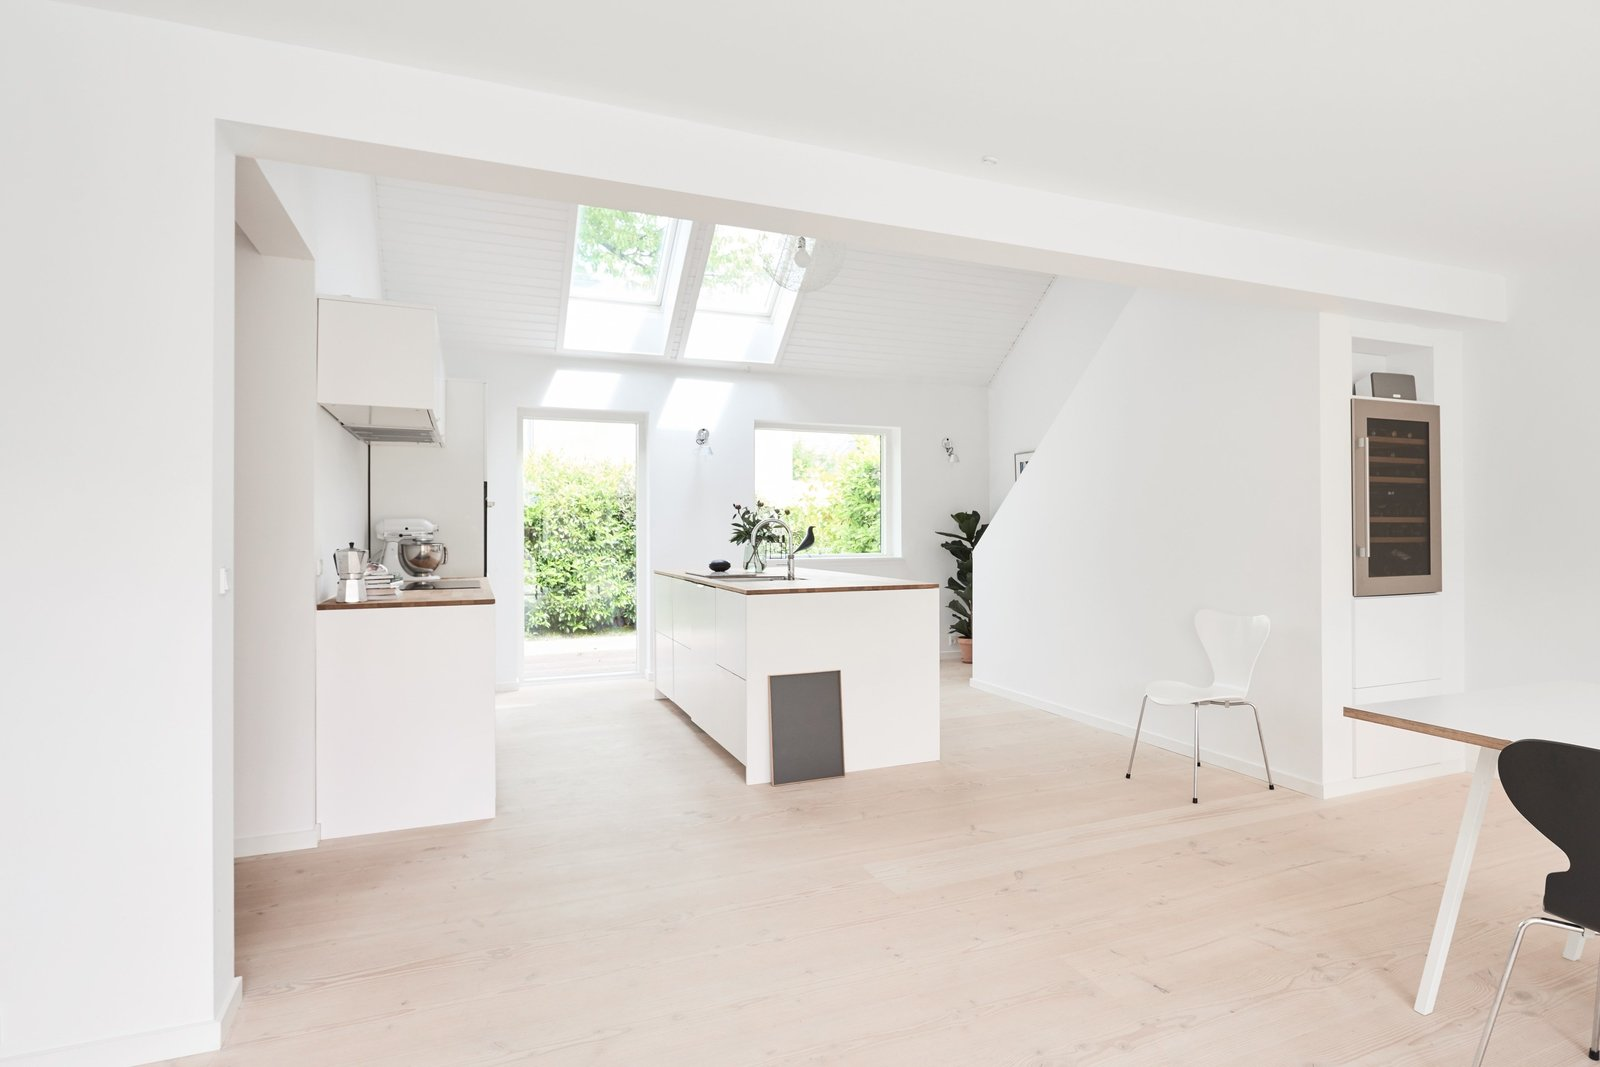 Henning Larsen Architects' design was used in spray painted white with painted metal bands that have been painted the same color and oak counter tops for this bright and airy contemporary home in Charlottenlund, Denmark. Tagged: Kitchen, White Cabinet, Light Hardwood Floor, Wood Counter, Wall Lighting, Refrigerator, Range, Drop In Sink, Range Hood, Pendant Lighting, and Beverage Center.  Photo 6 of 9 in Modern Kitchen Upgrade Ideas From a Danish Design Firm That's Challenging the Kitchen Market